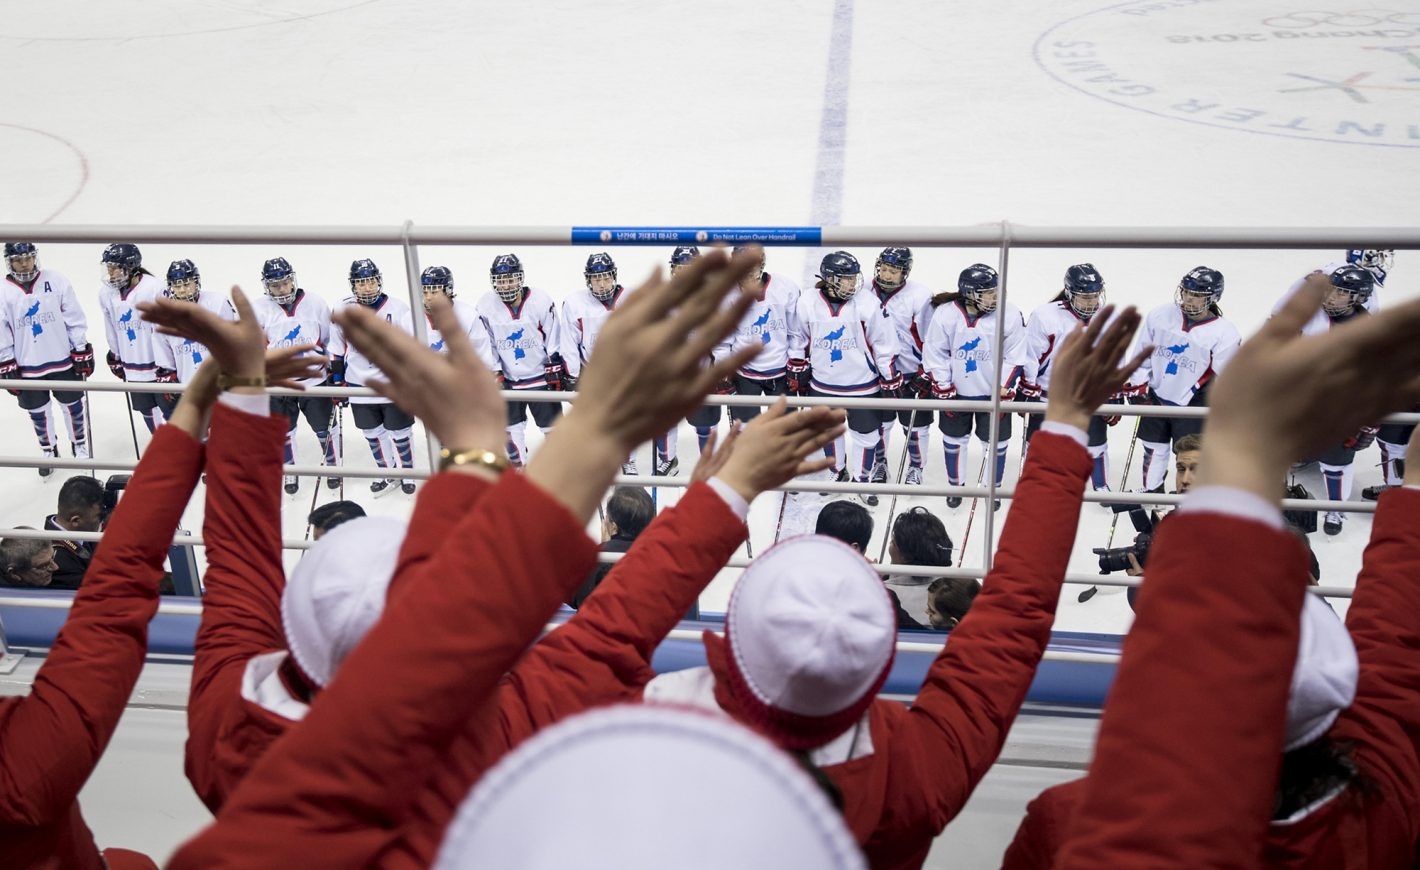 """After the game: Team Korea standing right in front of the """"Army of Beauties"""" – North Korean Cheerleaders. Women's Ice Hockey Preliminary Round Switzerland vs. Korea at Kwandong Hockey Centre on February 10, 2018 during the PyeongChang 2018 Winter Olympic Games. Nikon D850 